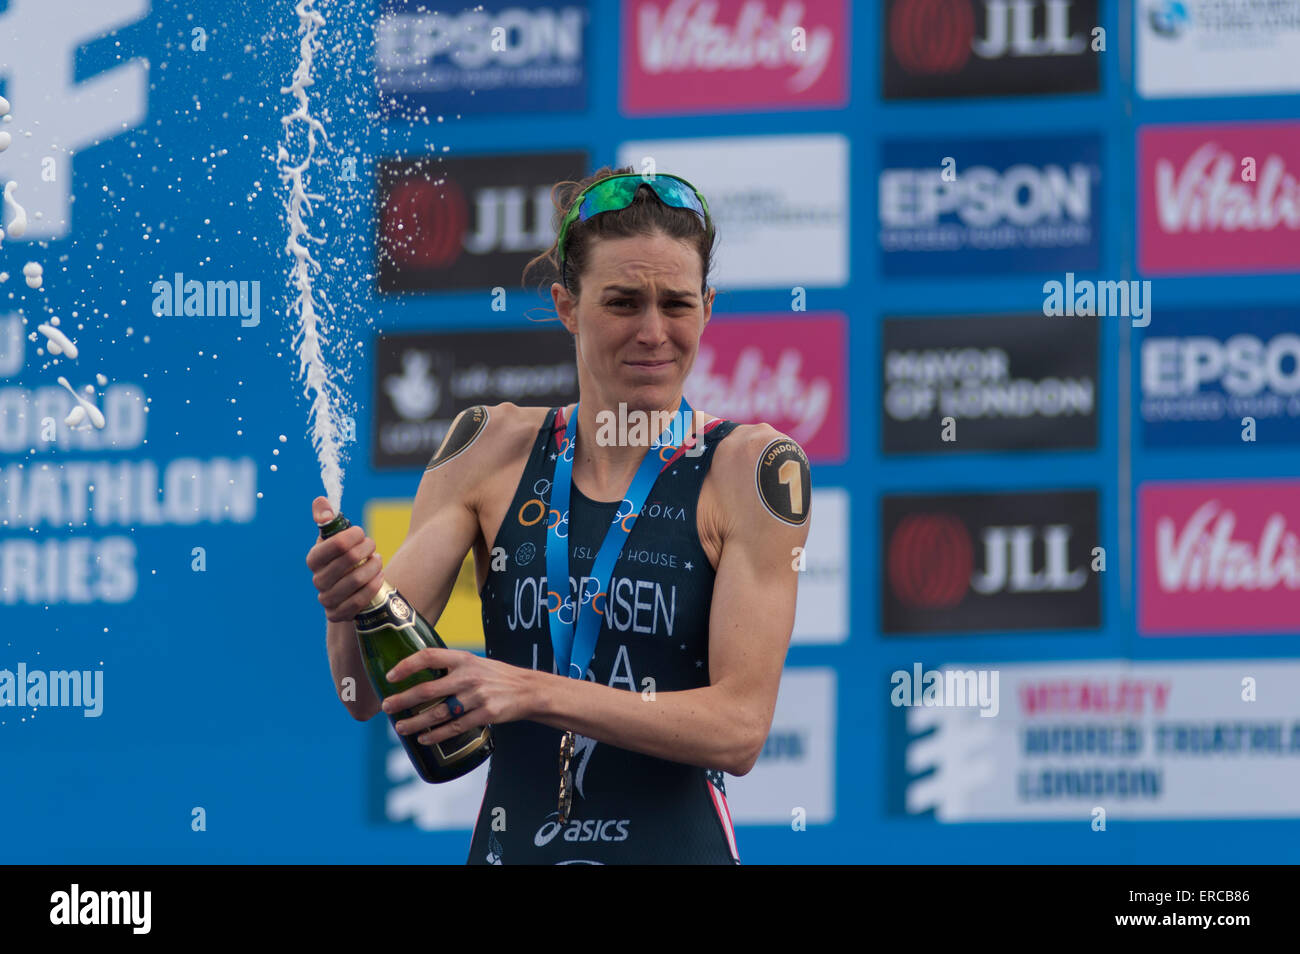 Gwen Jorgensen (USA) celebrates her win at the ITU London Triathlon in Hyde Park in traditional style with Bubbly. - Stock Image